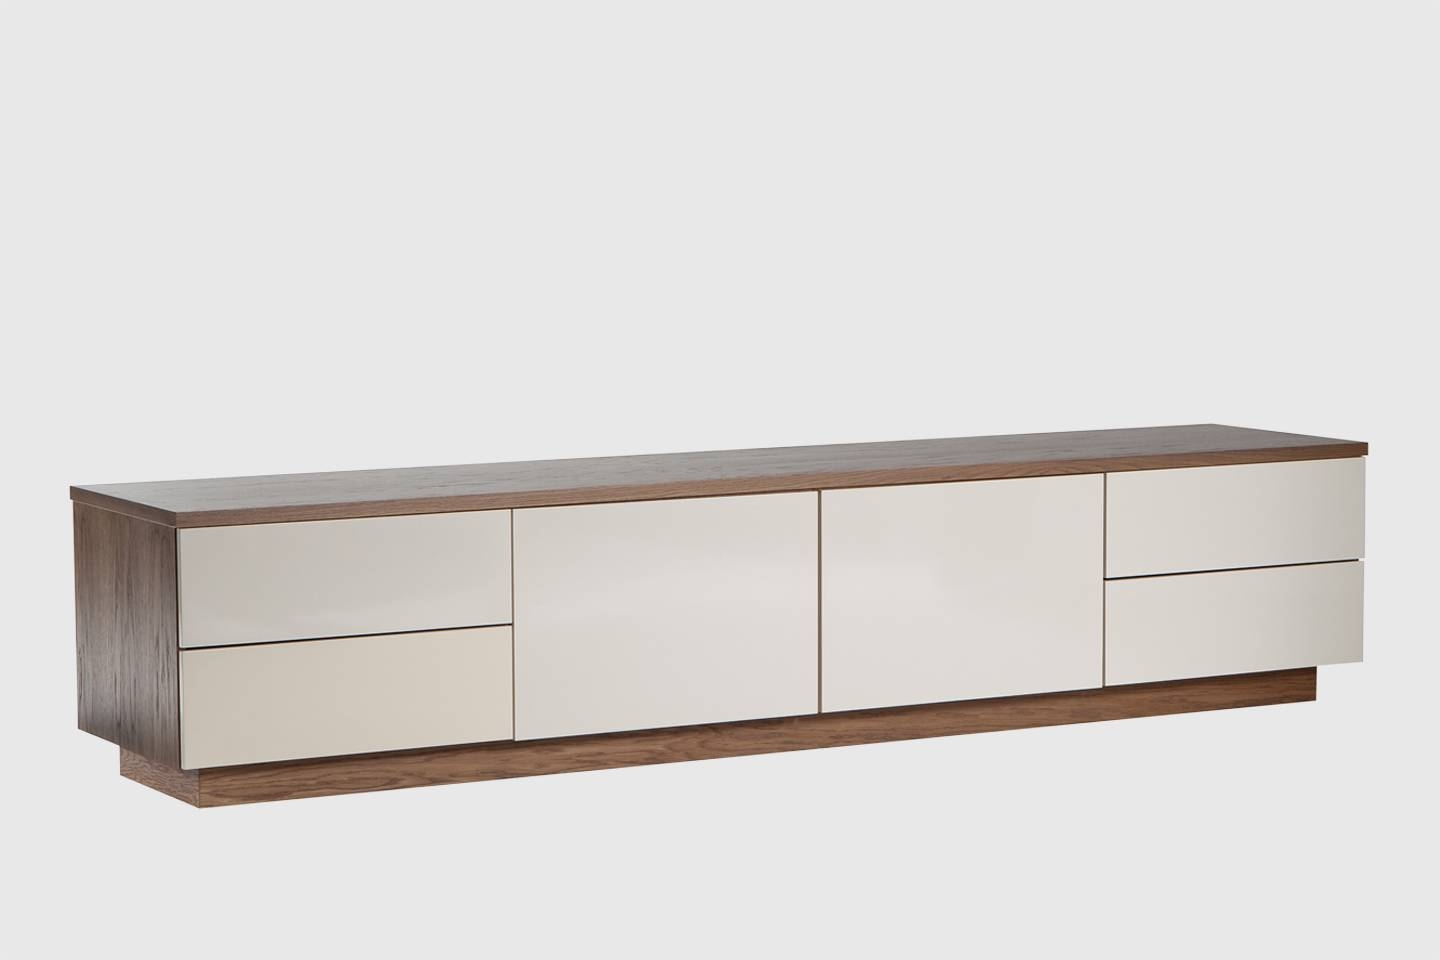 Sideboards Archives - Michael Northcroft inside Small Low Sideboards (Image 14 of 15)